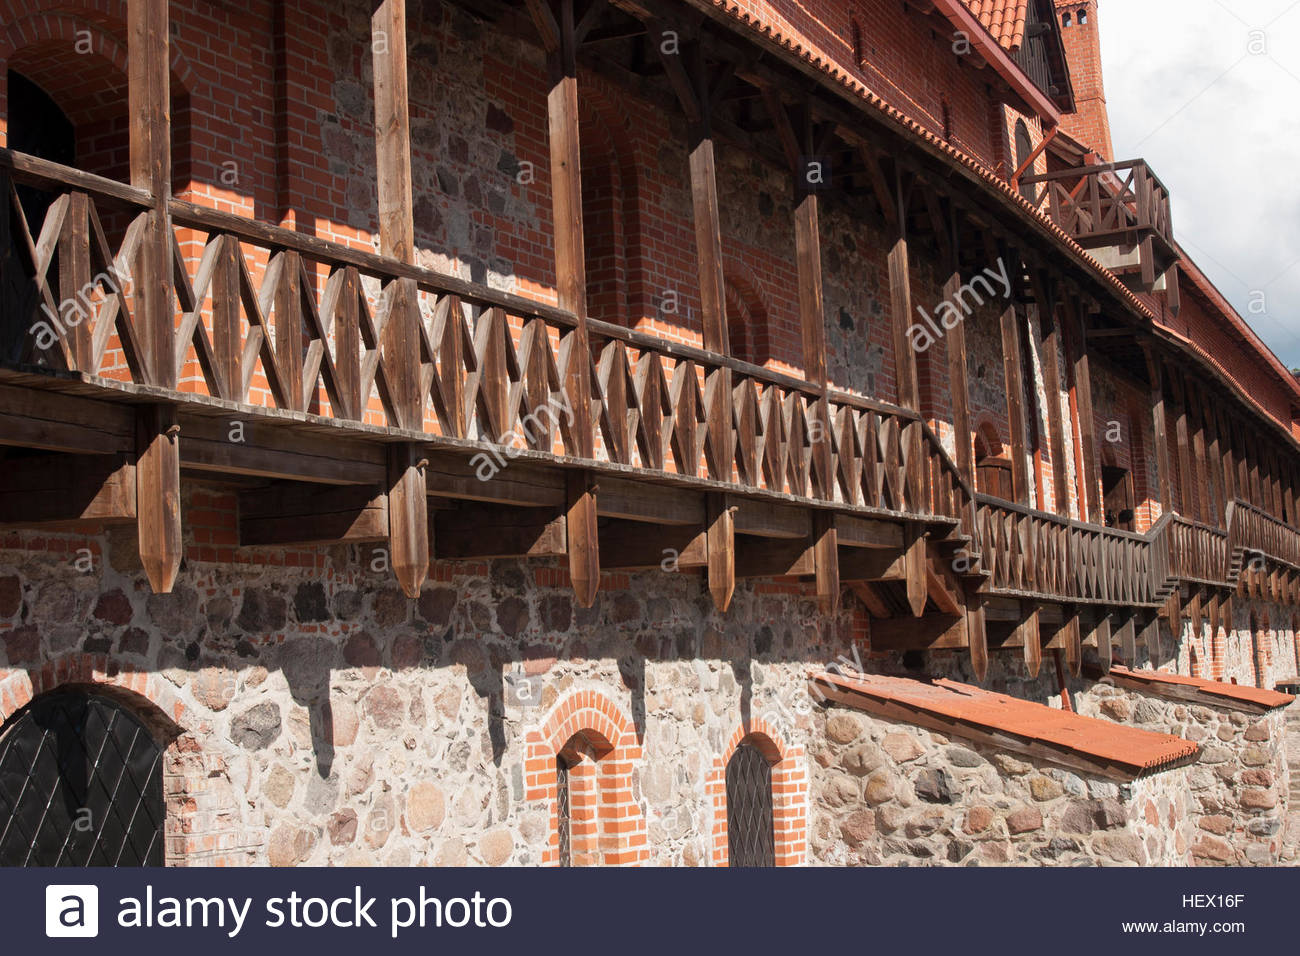 castle interior stock photo, royalty free image: 129649479 - alamy